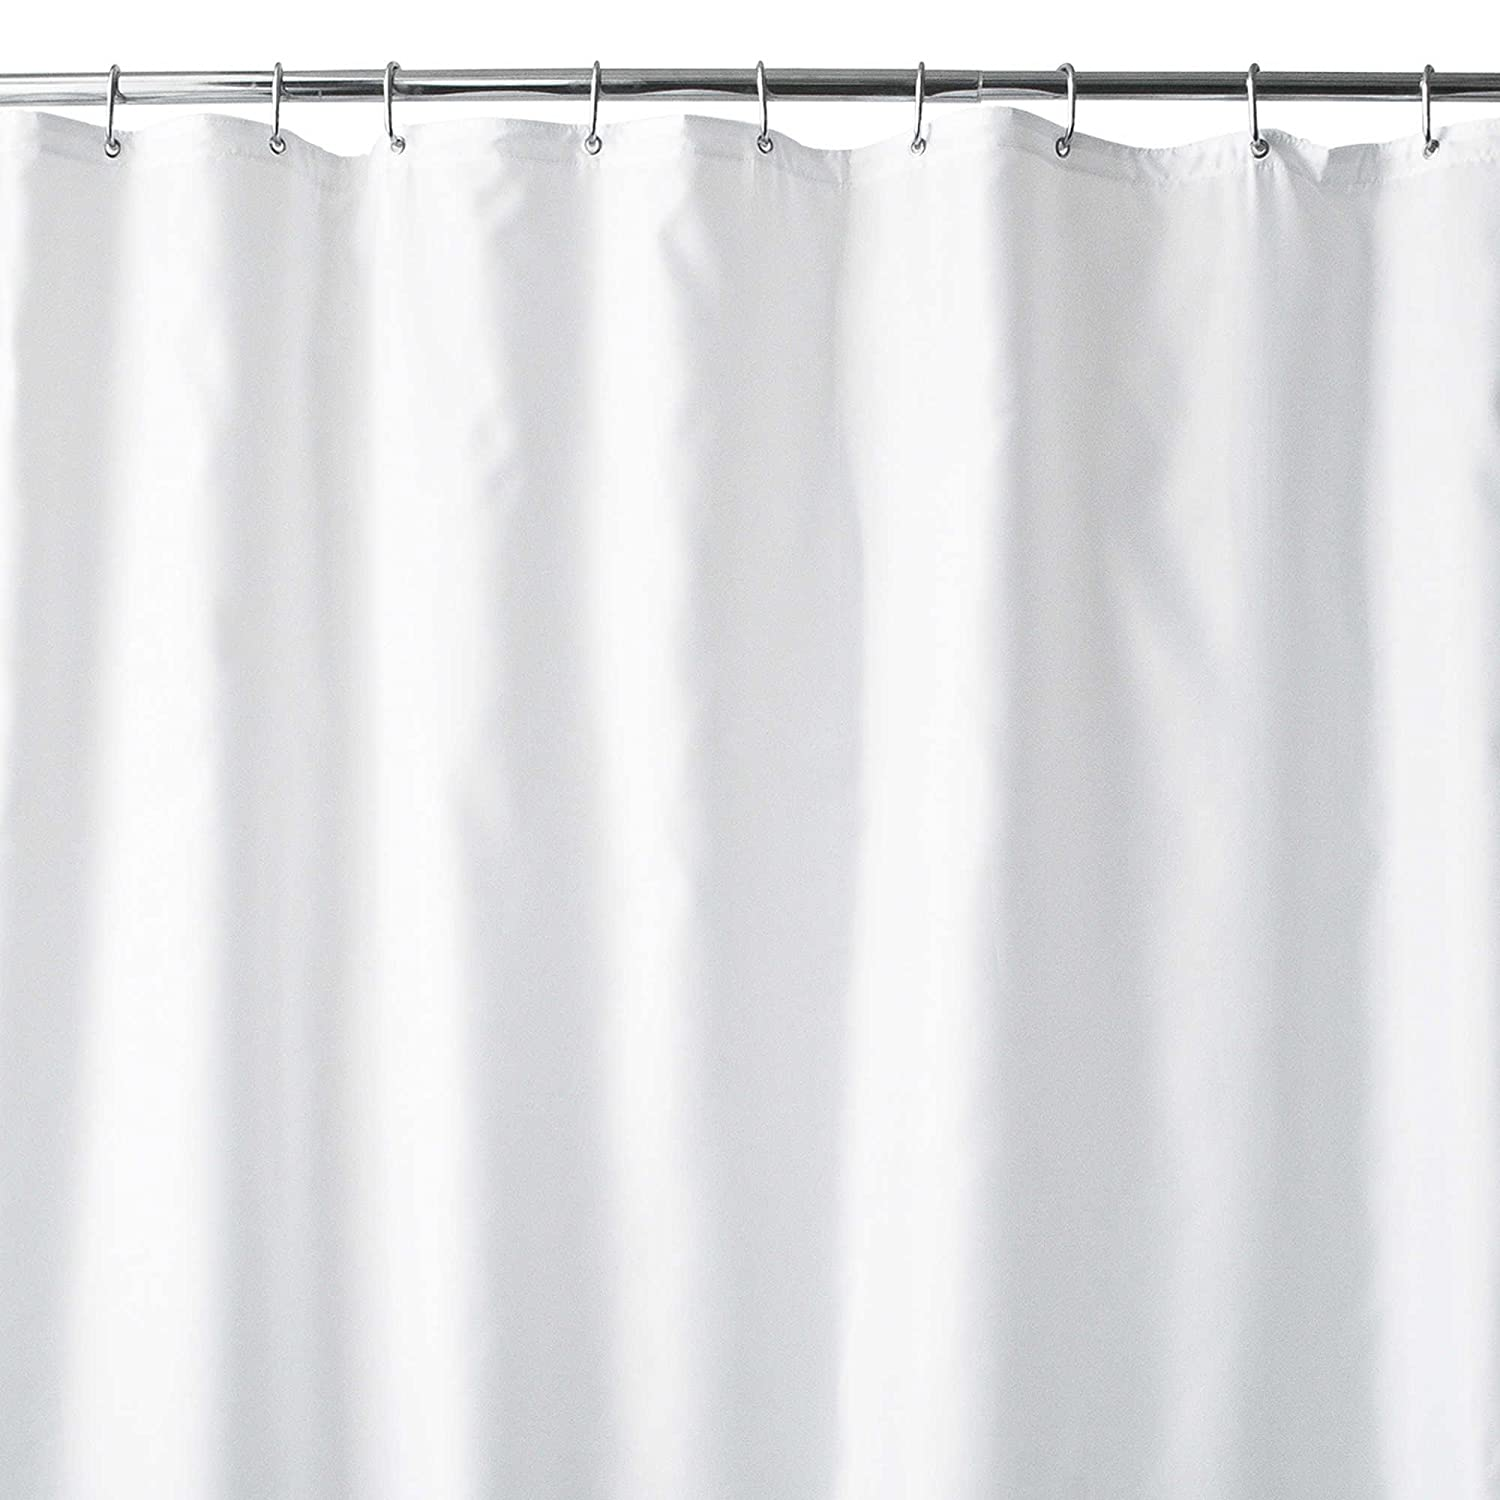 Amazon Wamsutta 96 Inch X 72 Wide Fabric Shower Curtain Liner With Suction Cups In White Home Kitchen